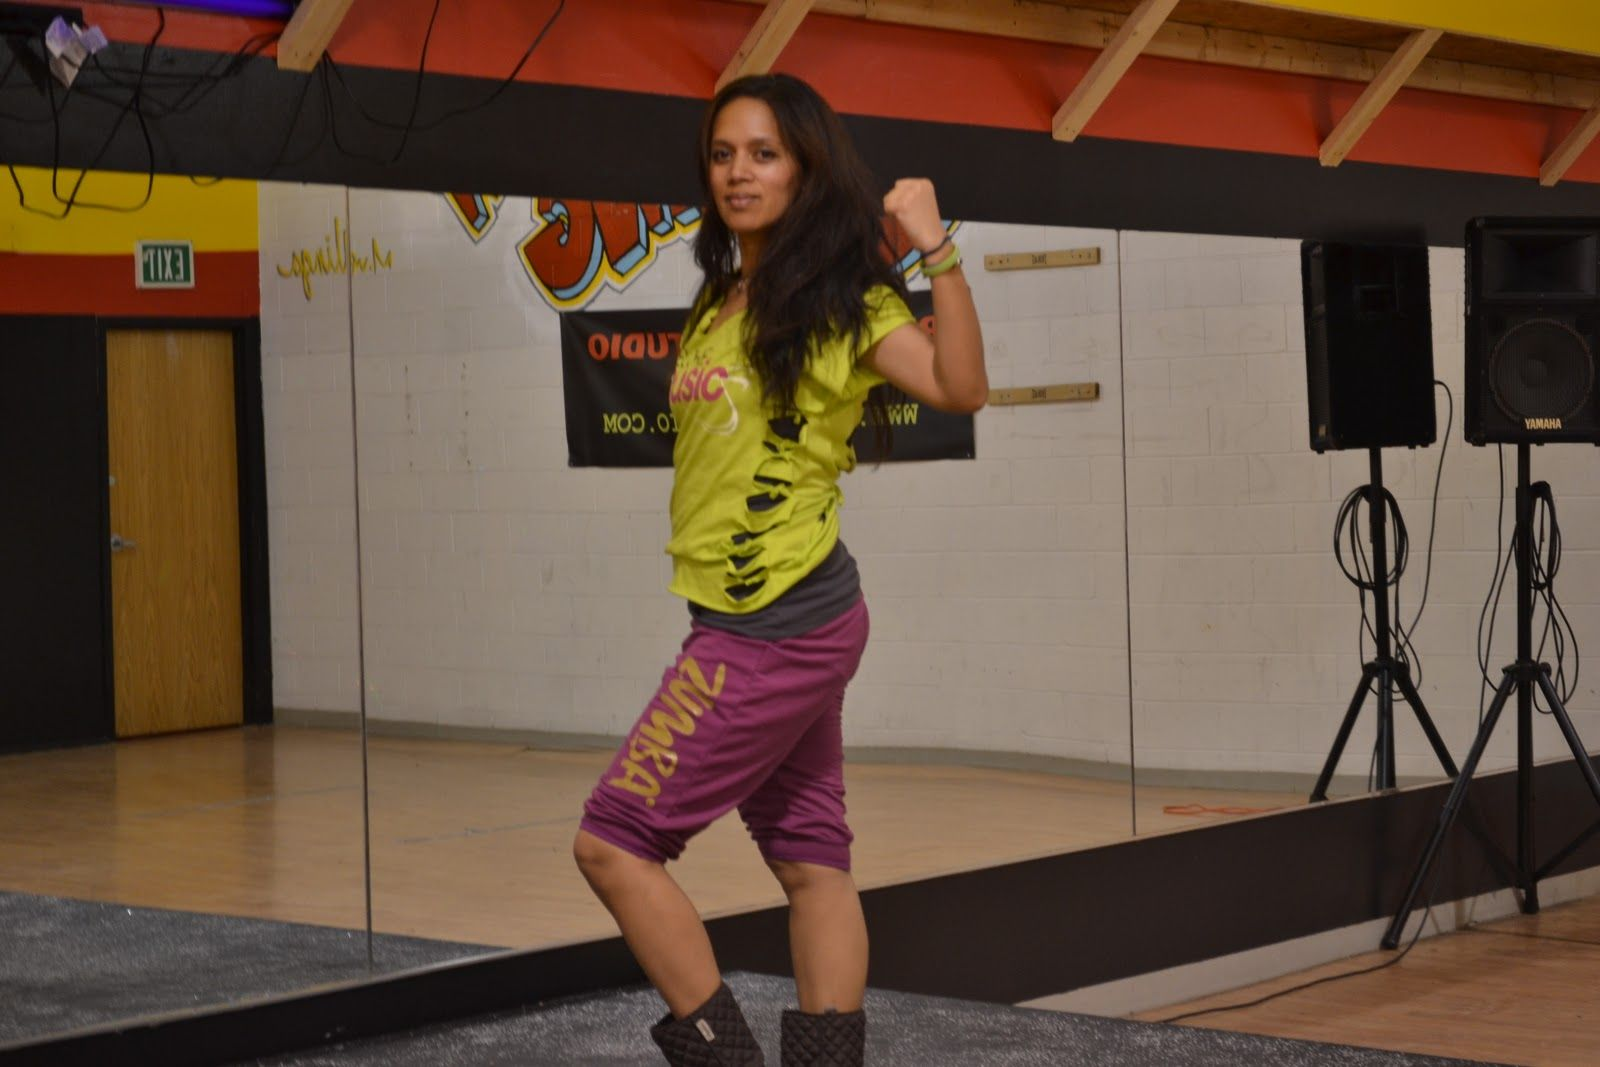 T-shirt design for zumba - Tutorial How To Make Your Own Slashed Up Zumba Shirt With Tui Aiono